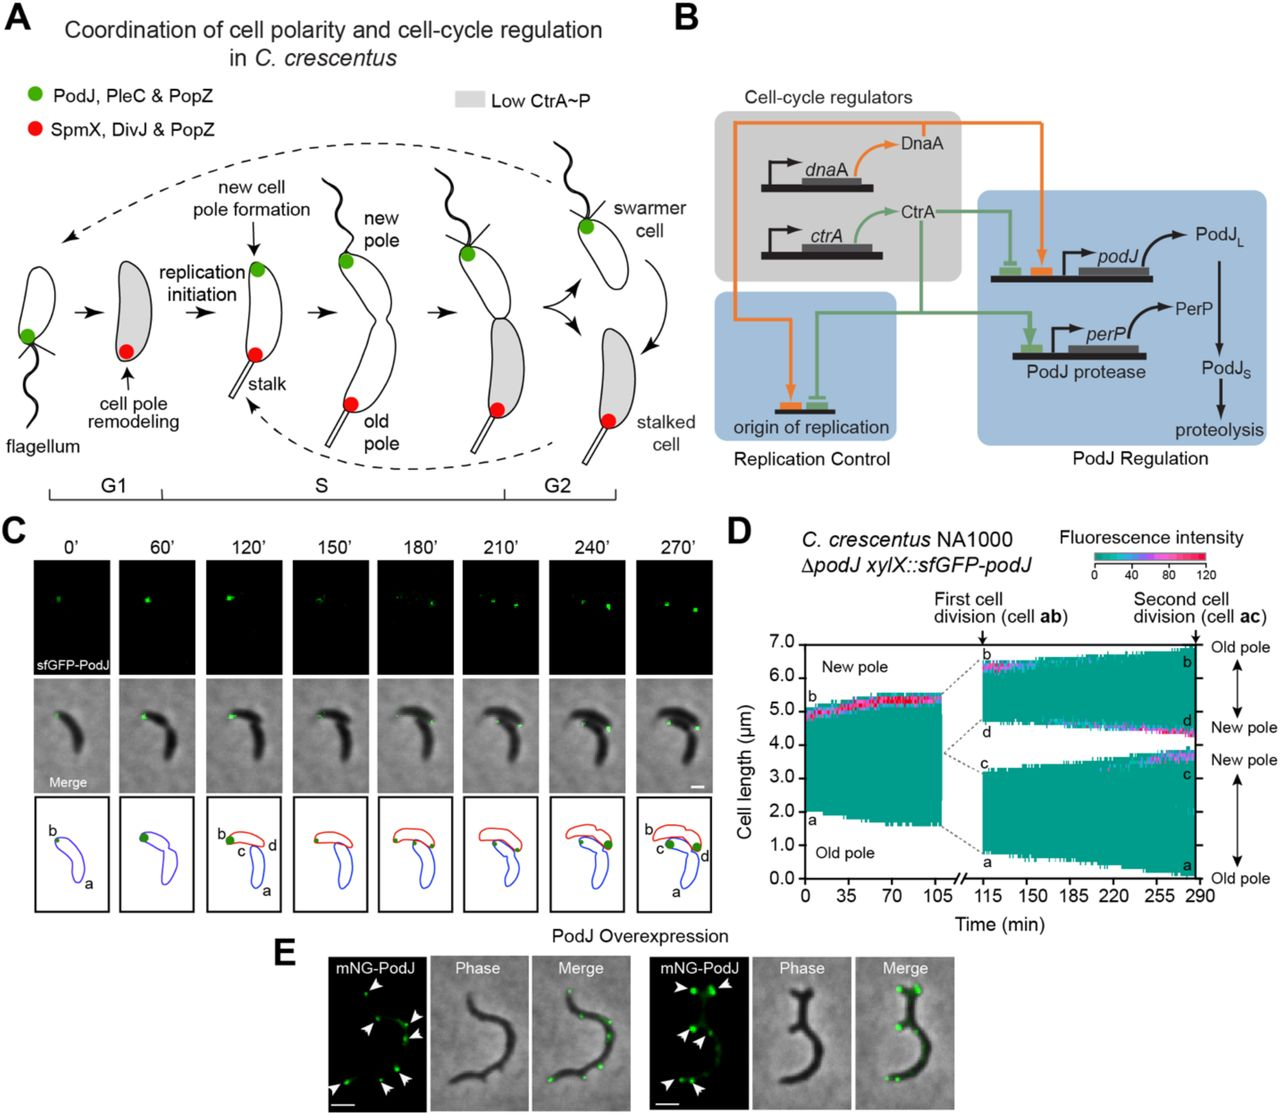 A circuit of protein-protein regulatory interactions enables